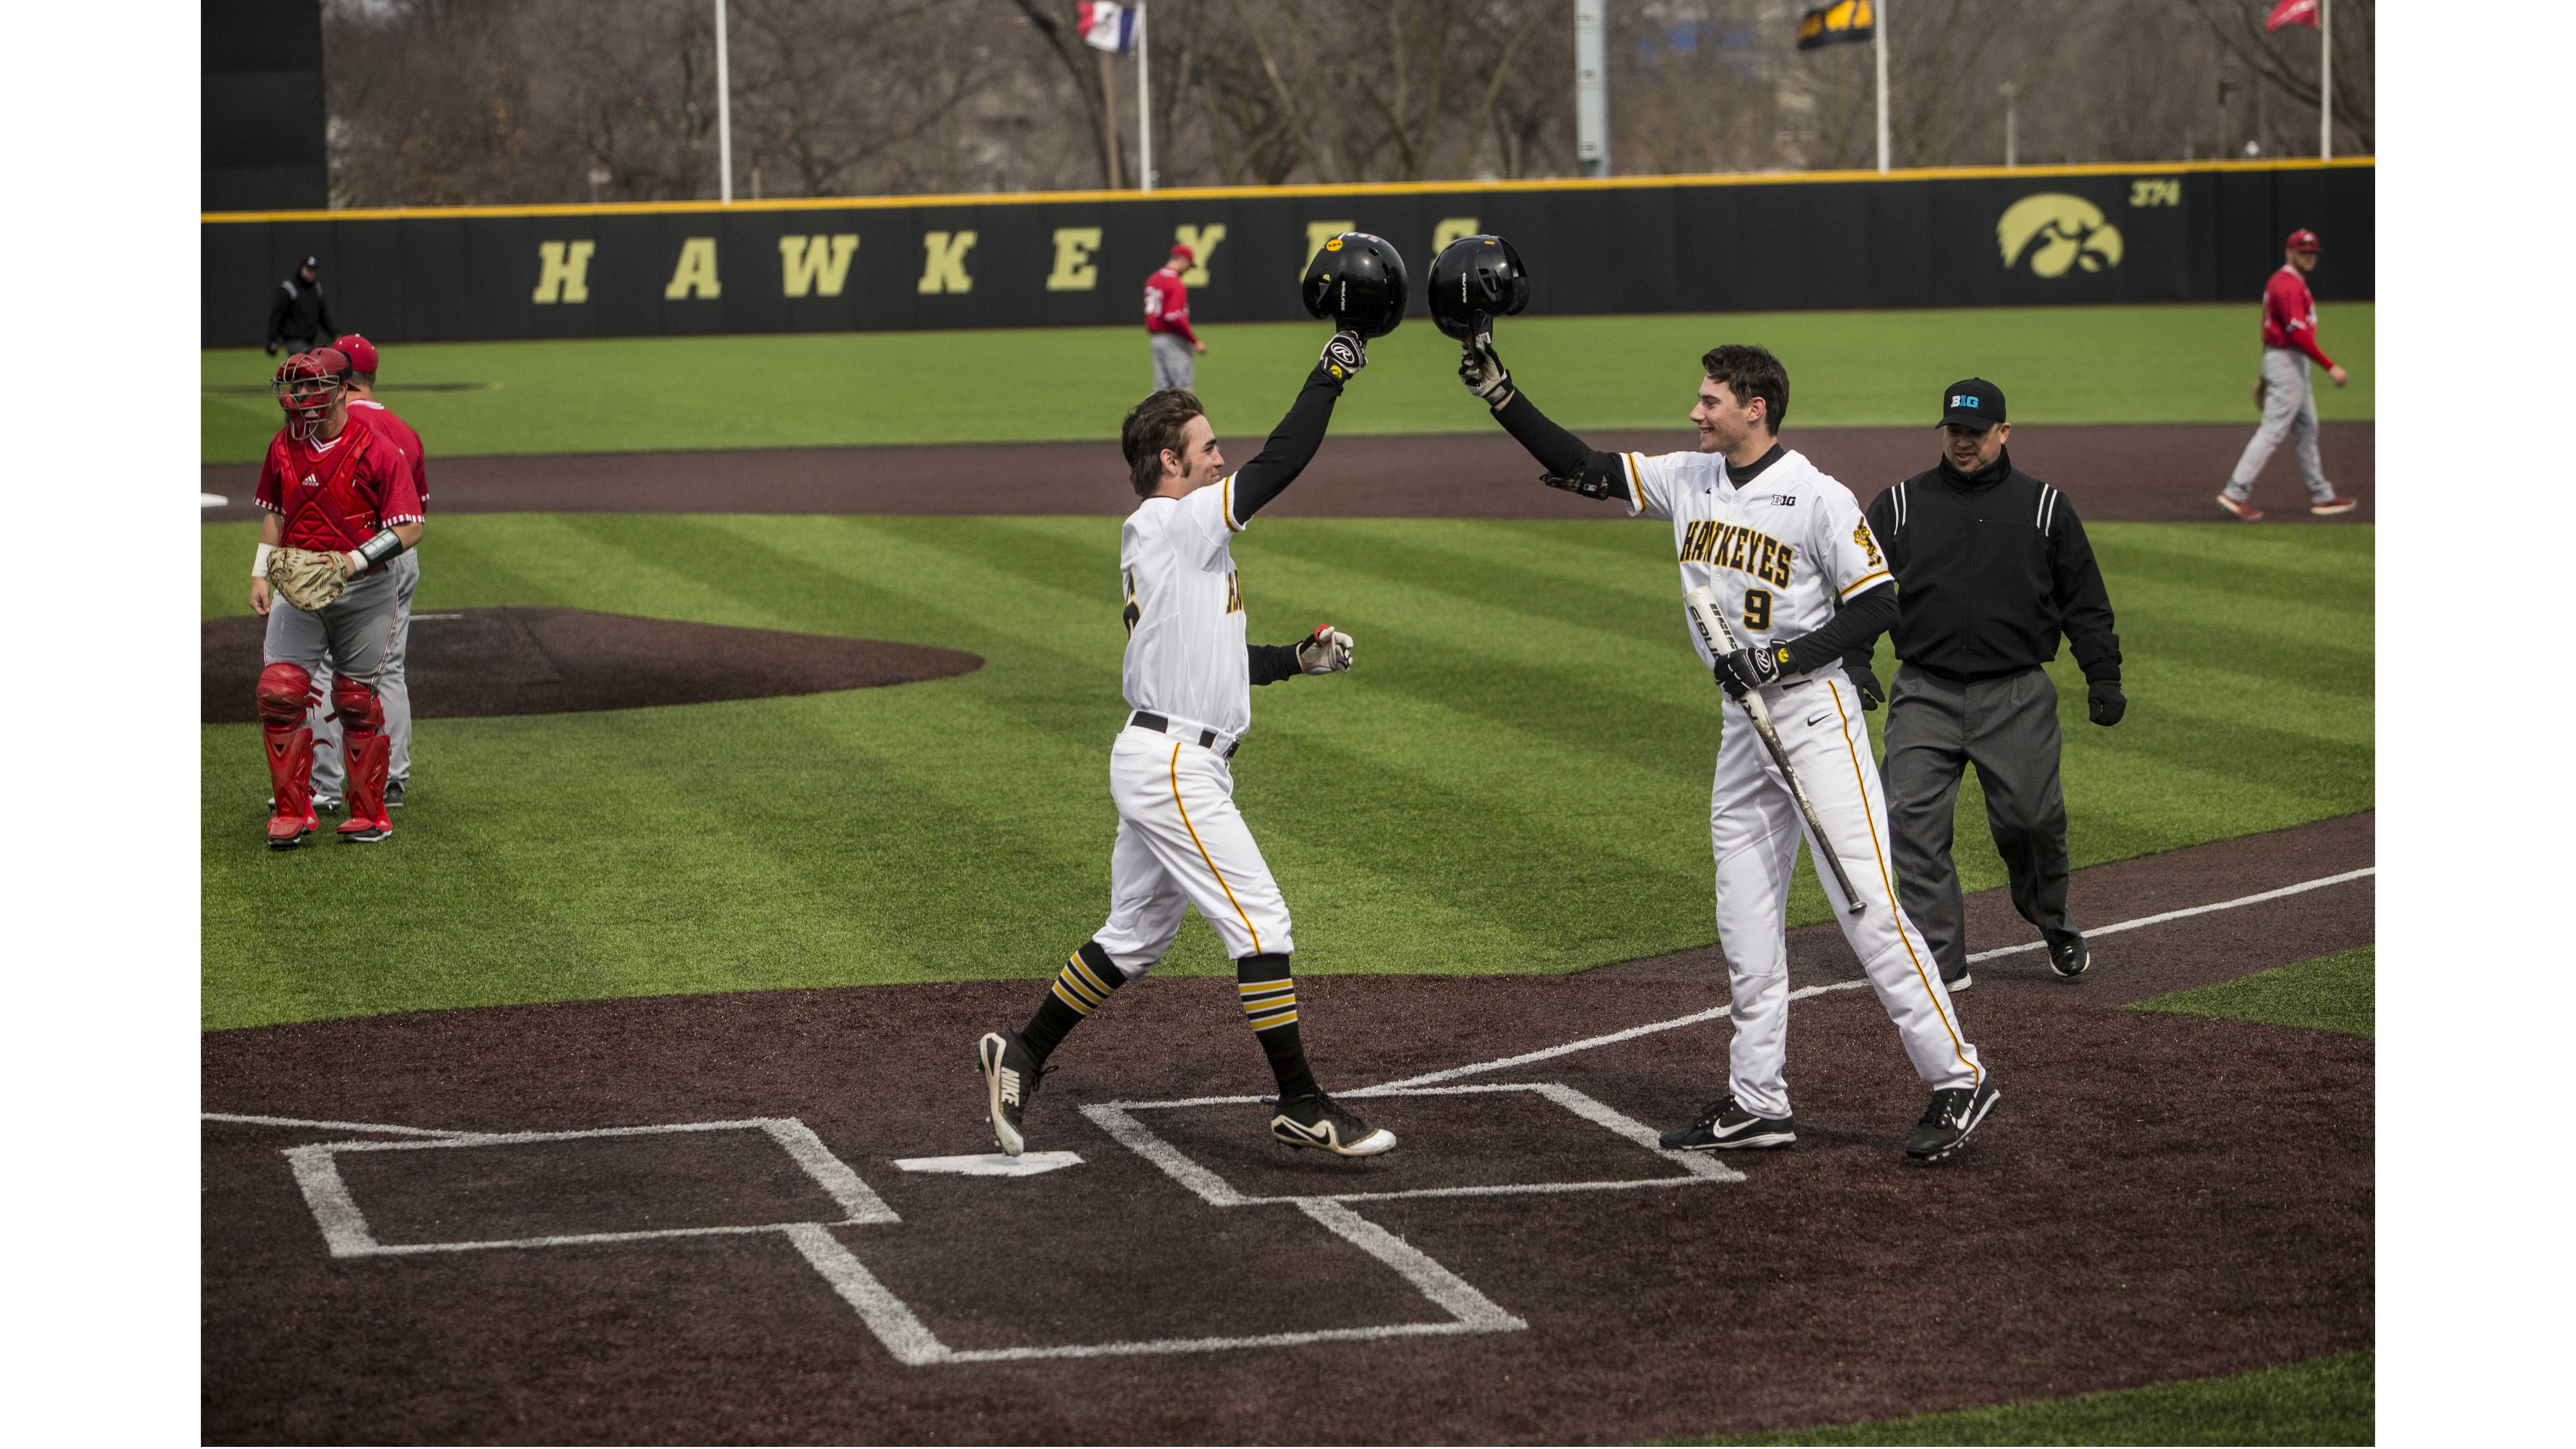 Hellerball takes down No. 25 Illinois for series win